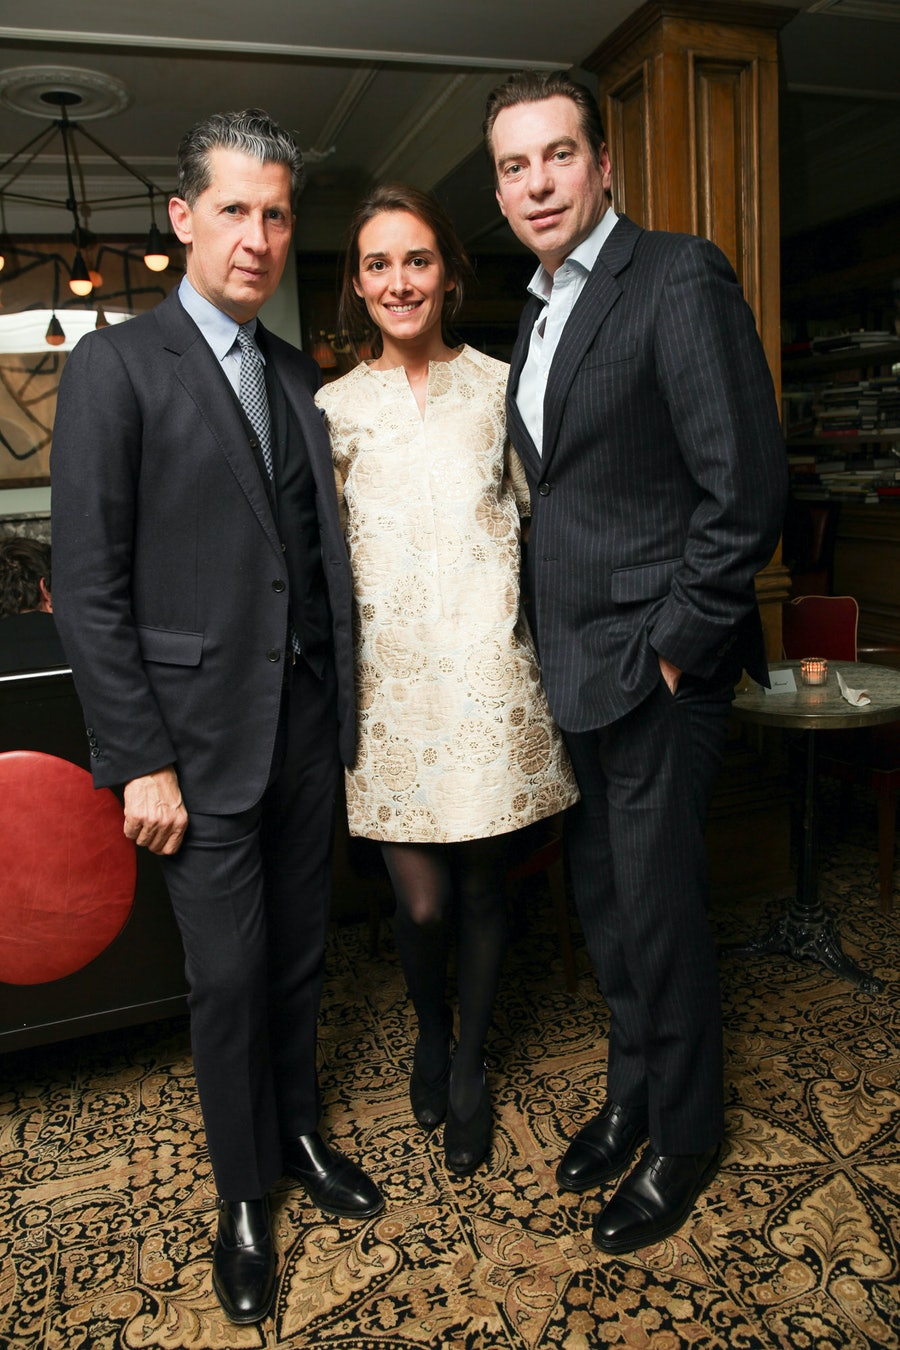 Stefano Tonchi, Ambra Medda, and David Maupin. Photo by BFAnyc.com.